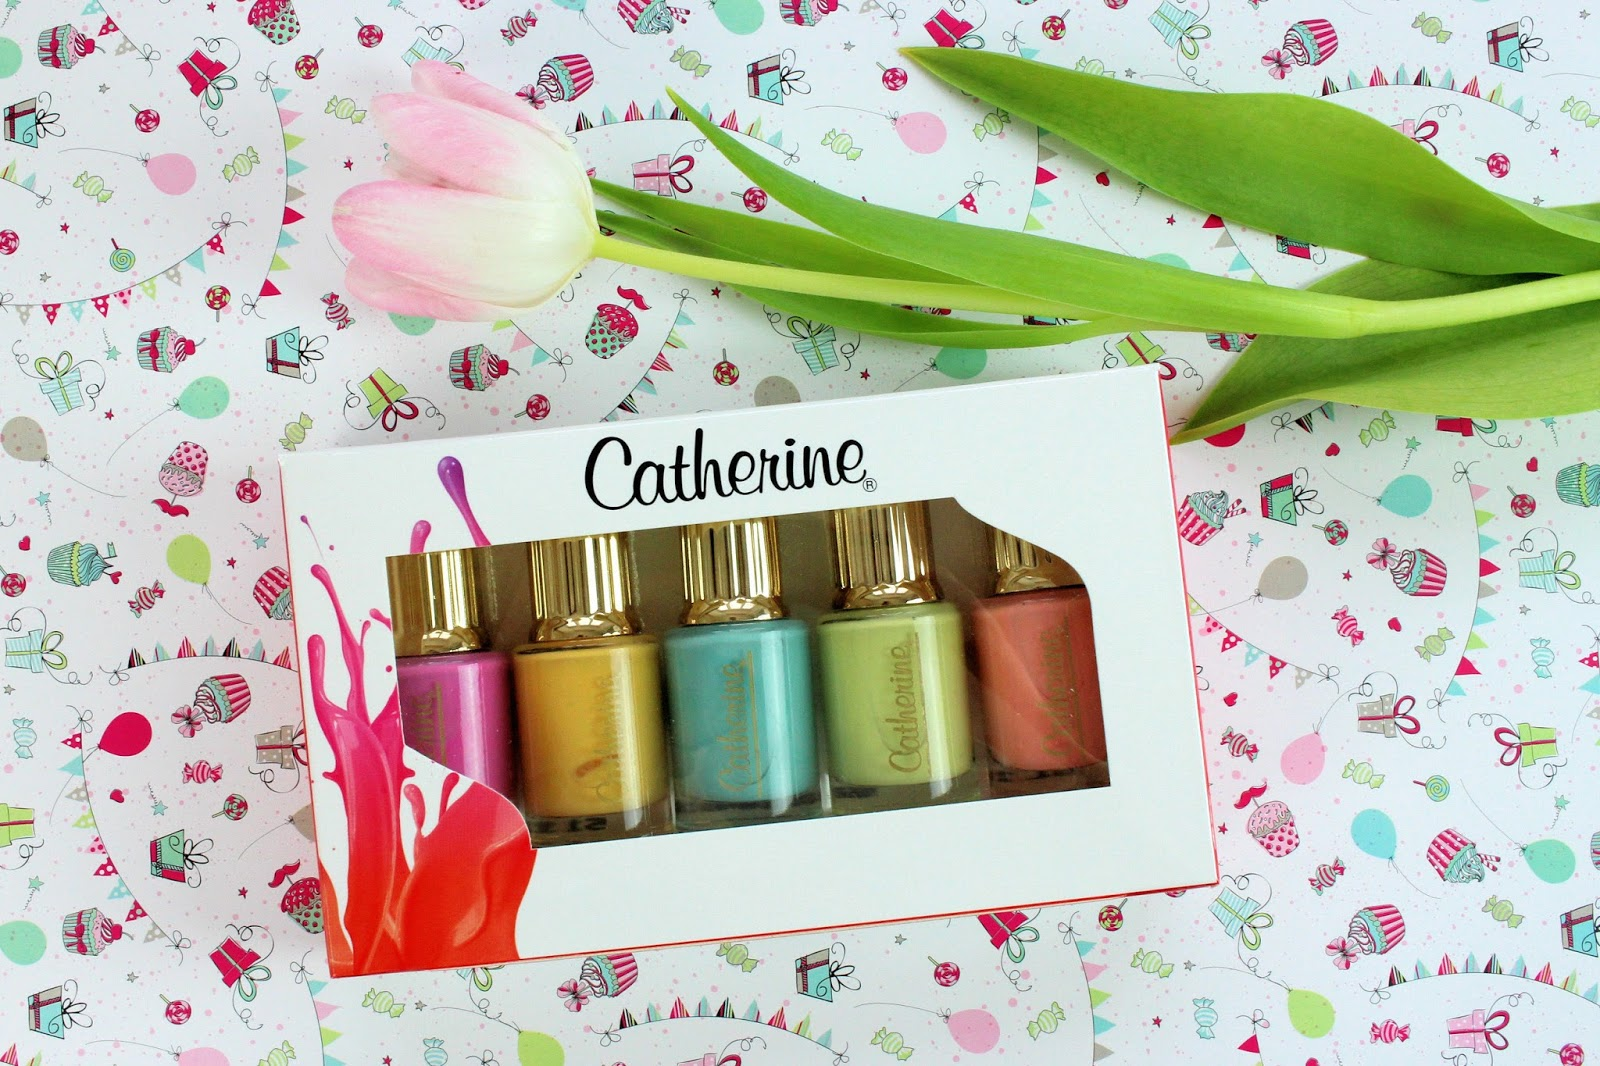 gewinnspiel, verlosung, giveaway, nagellack, nailpolish, gewinne, paradiso, catherine, blog geburtstag, kollektion, frühling, trendfarben, set, nailart, naildesign, fingernägel, maniküre, classic lac selection,